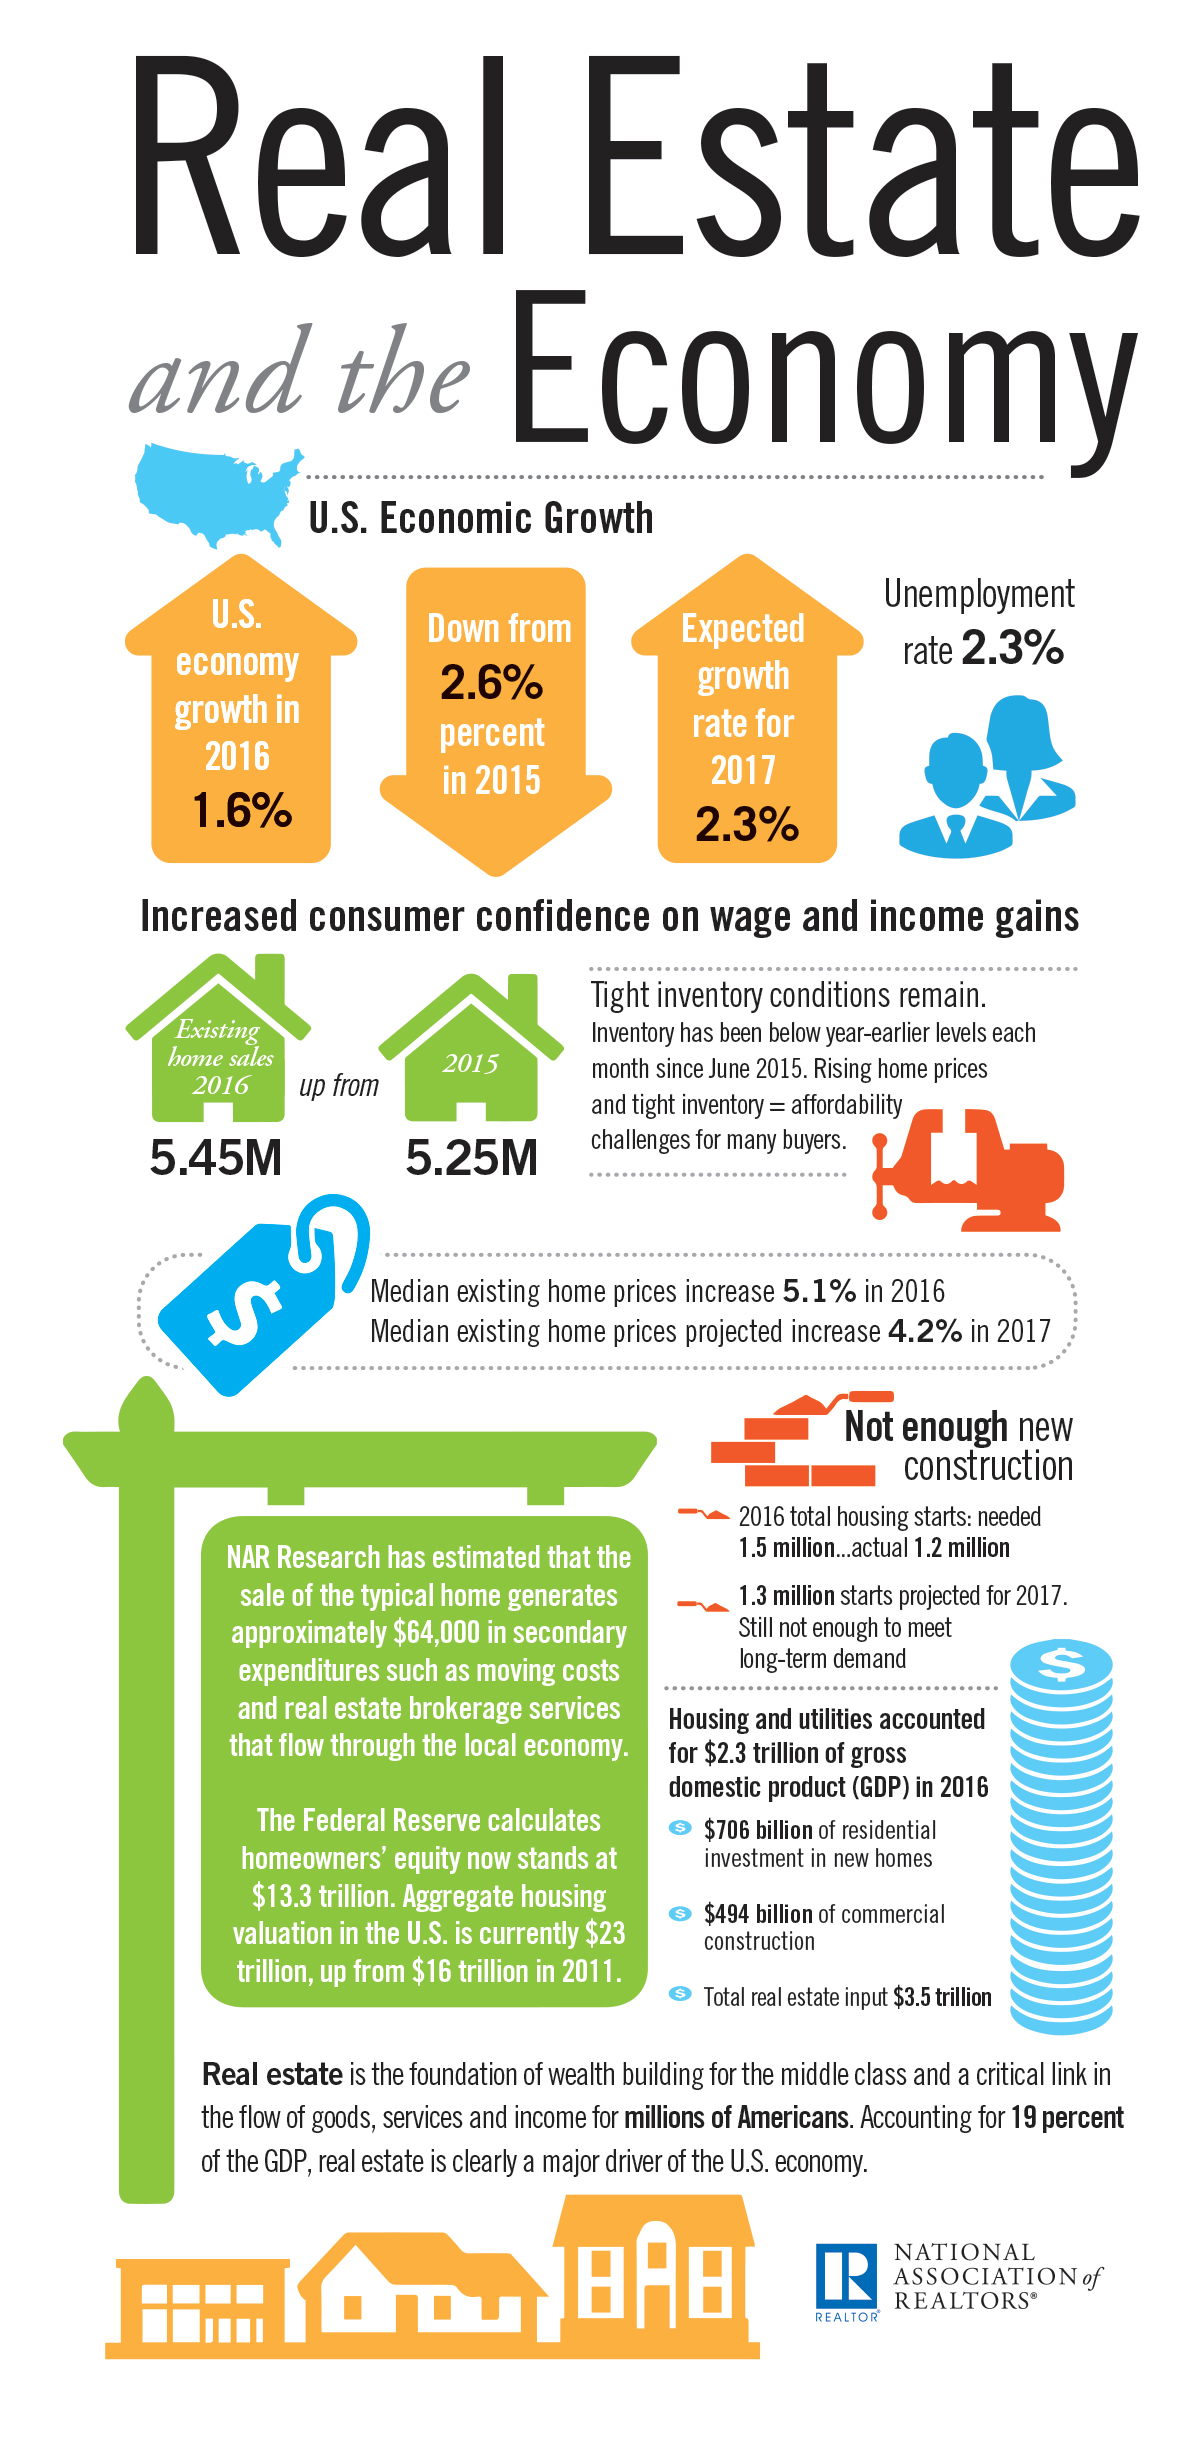 2017-real-estate-and-the-economy-infographic-05-11-2017-1204w-2440h